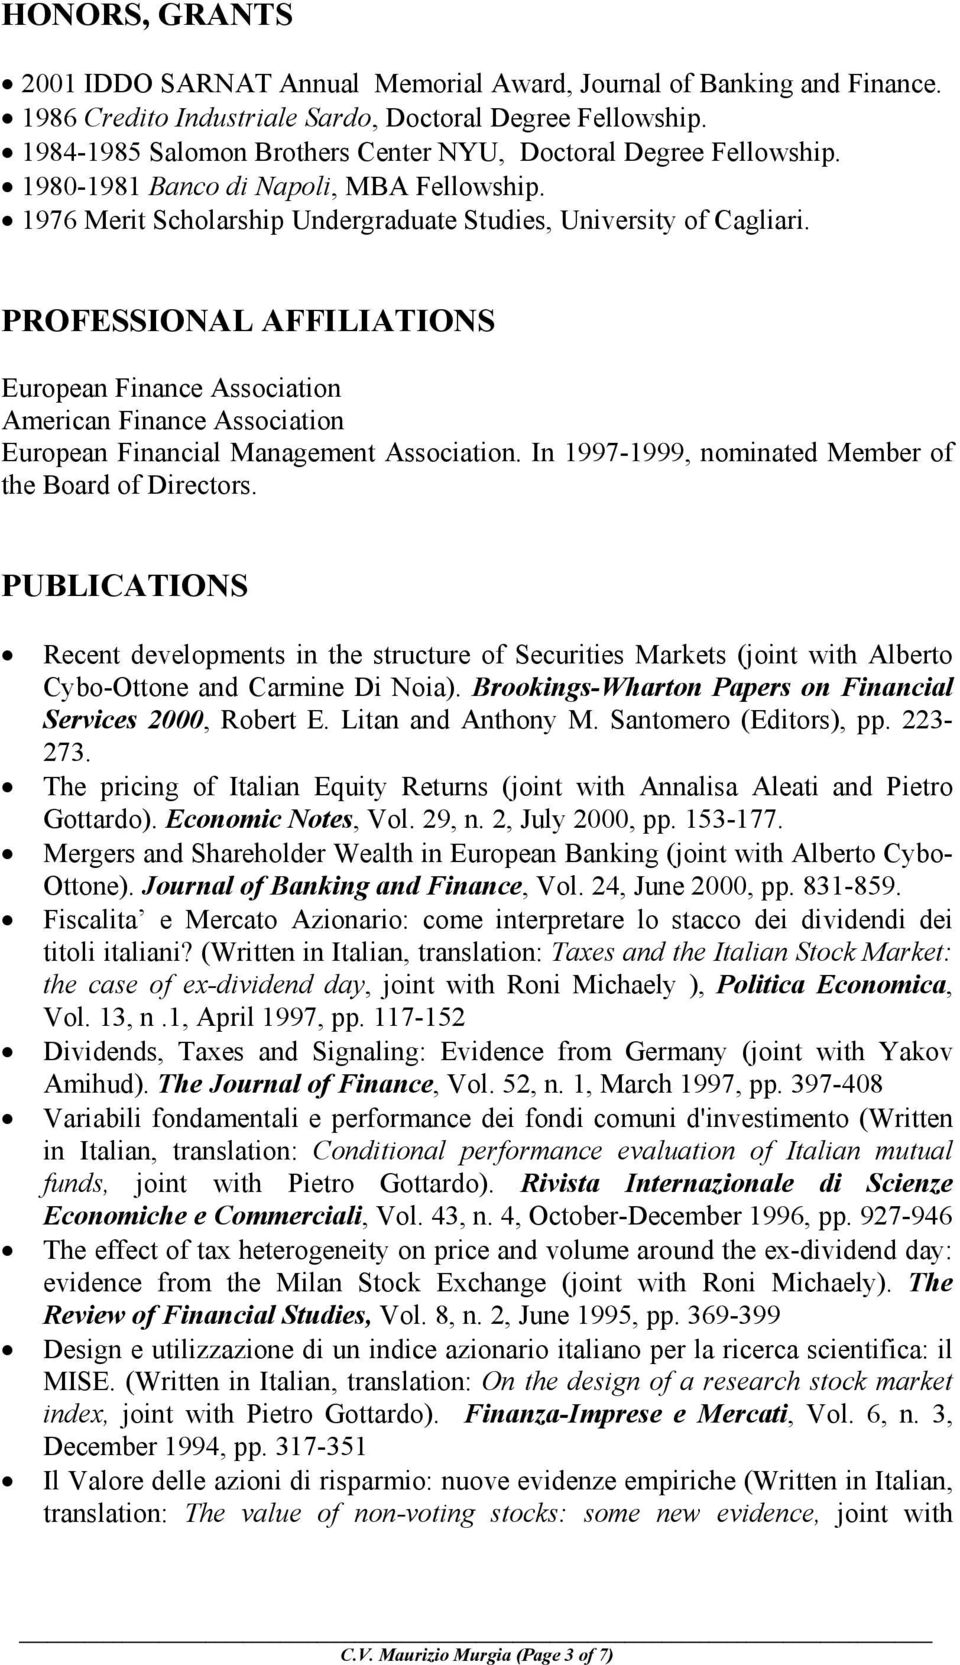 PROFESSIONAL AFFILIATIONS European Finance Association American Finance Association European Financial Management Association. In 1997-1999, nominated Member of the Board of Directors.